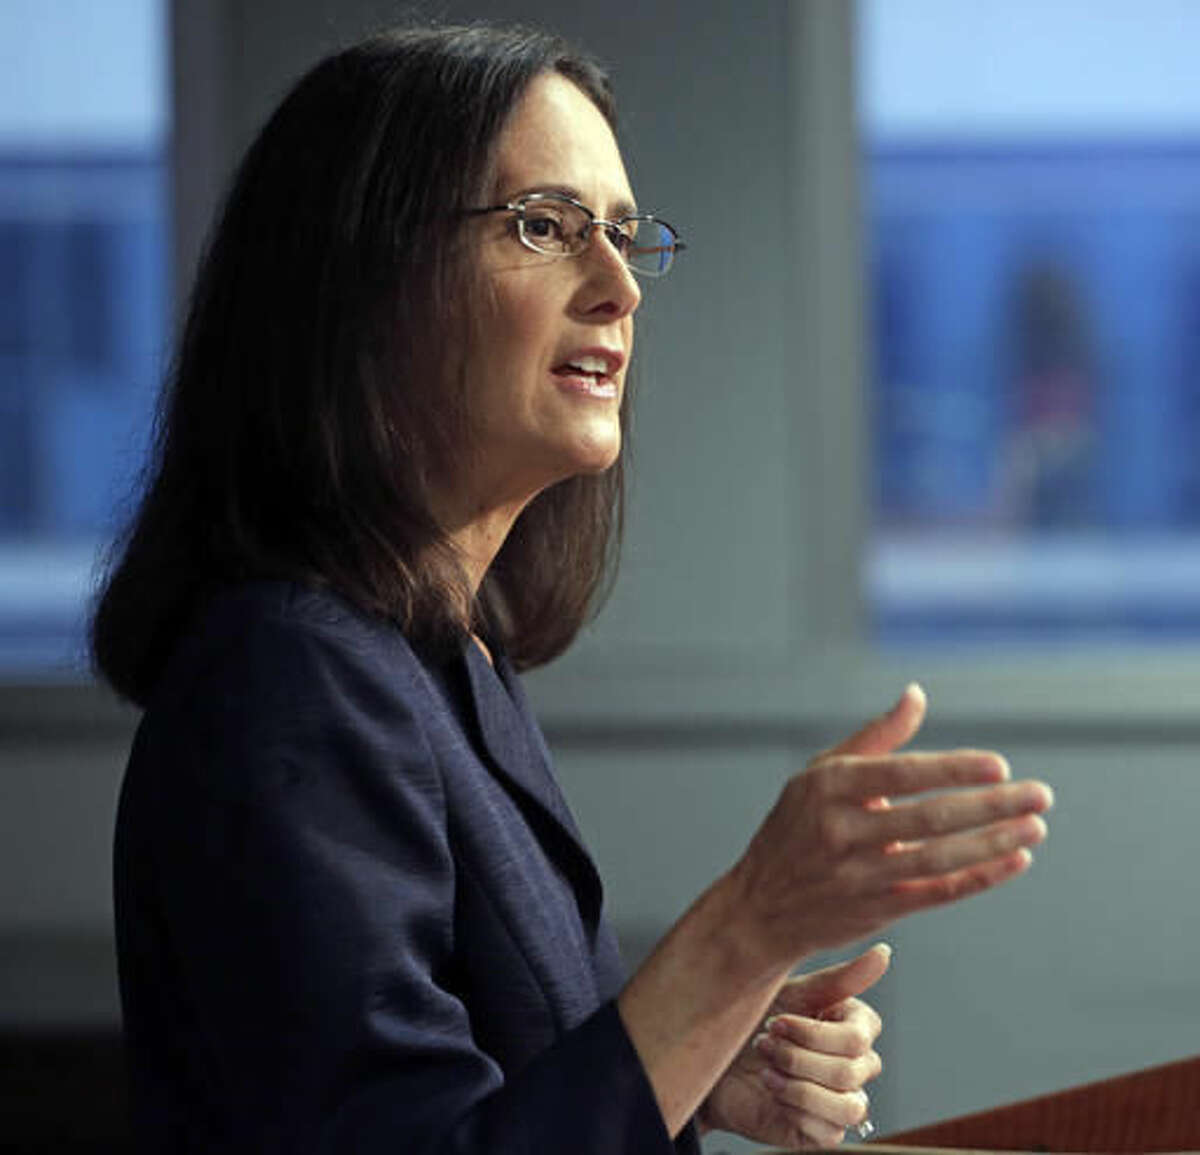 FILE - In this Aug. 21, 2014 file photo, Illinois Attorney Gen. Lisa Madigan speaks at a news conference, in Chicago. Madigan's office has issued an opinion stating that privately transmitted emails about government business are subject to disclosure in a case involving Chicago police officers' discussion of the Laquan McDonald shooting. The binding opinion by Madigan follows quickly on a May Cook County Circuit Court ruling that Chicago Mayor Rahm Emanuel's emails aren't automatically exempt from disclosure even though sent on private devices. (AP Photo/M. Spencer Green, File)